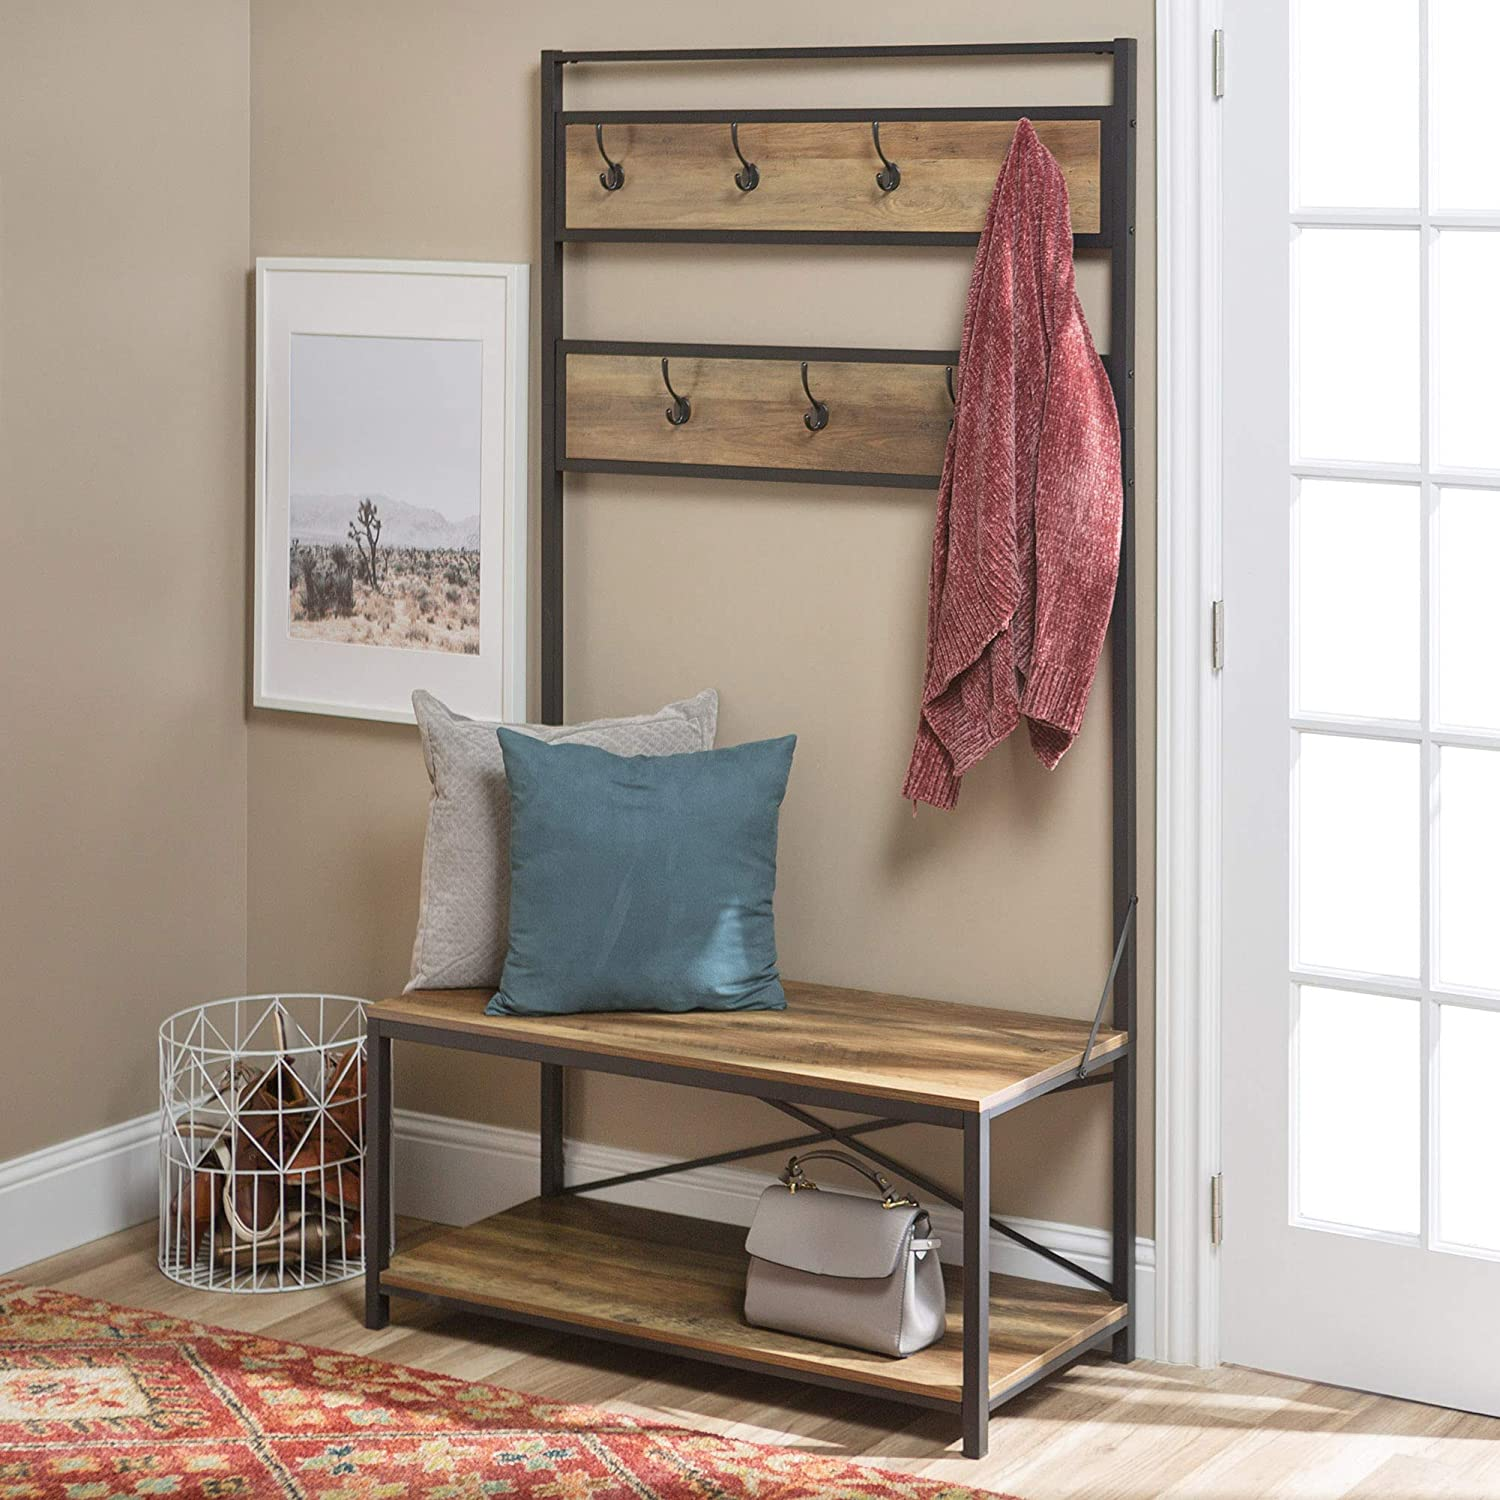 WE Furniture AZT72MWRO Farmhouse Entry Bench Mudroom Hall Tree Storage Shelf Coat Rack, 72 Inch, Brown Reclaimed Barnwood